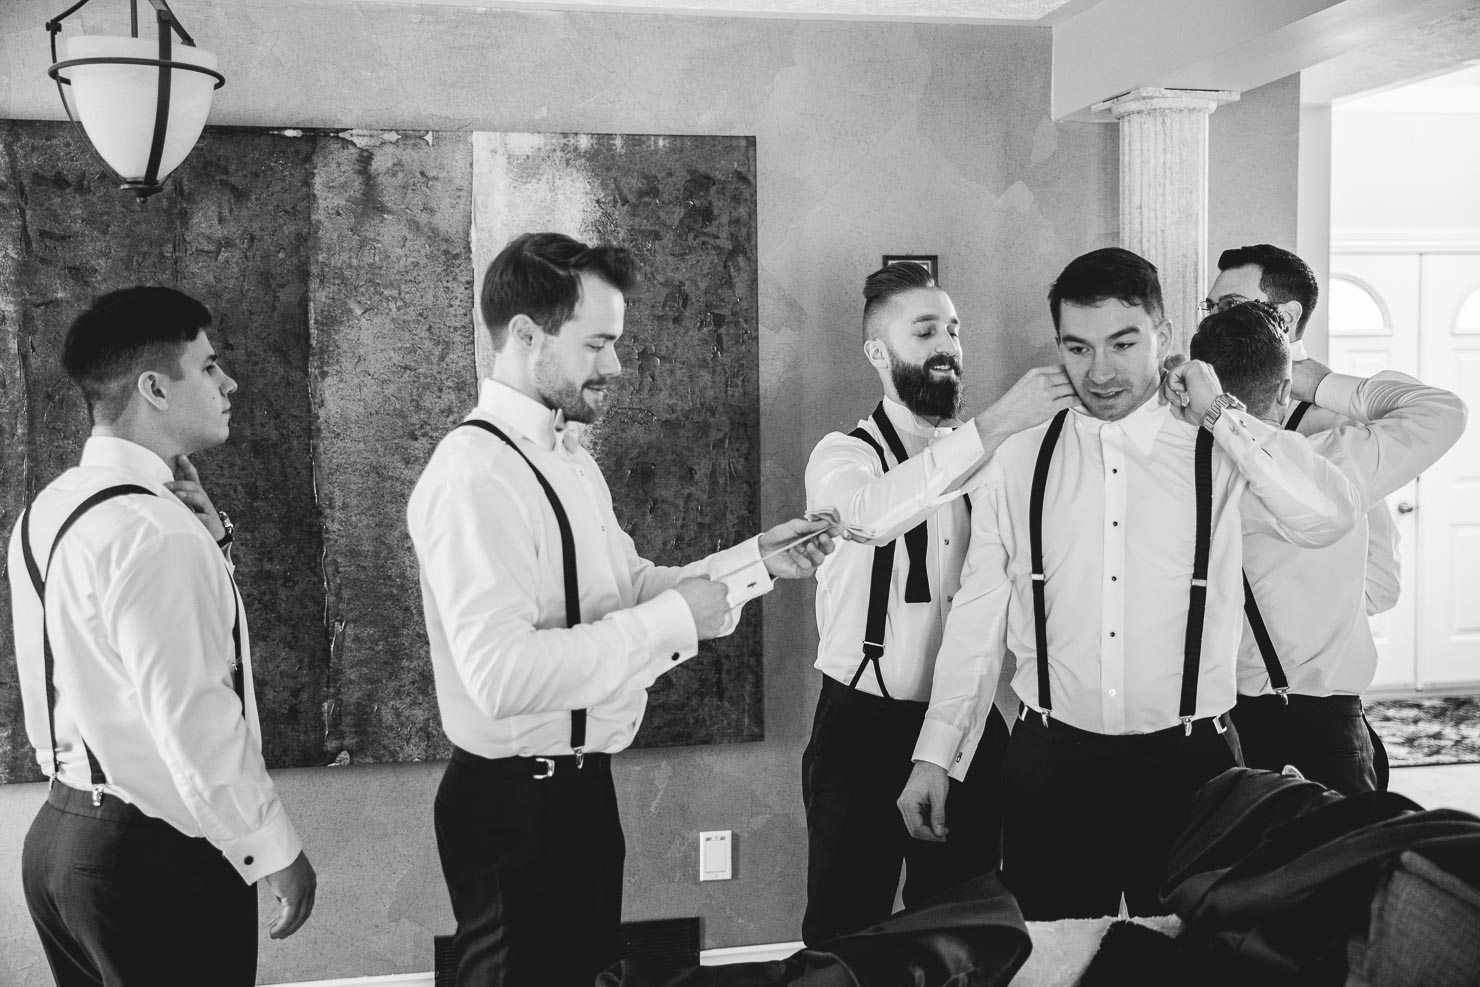 Groomsmen, sudbury wedding, akaiserphoto, wedding photos, wedding